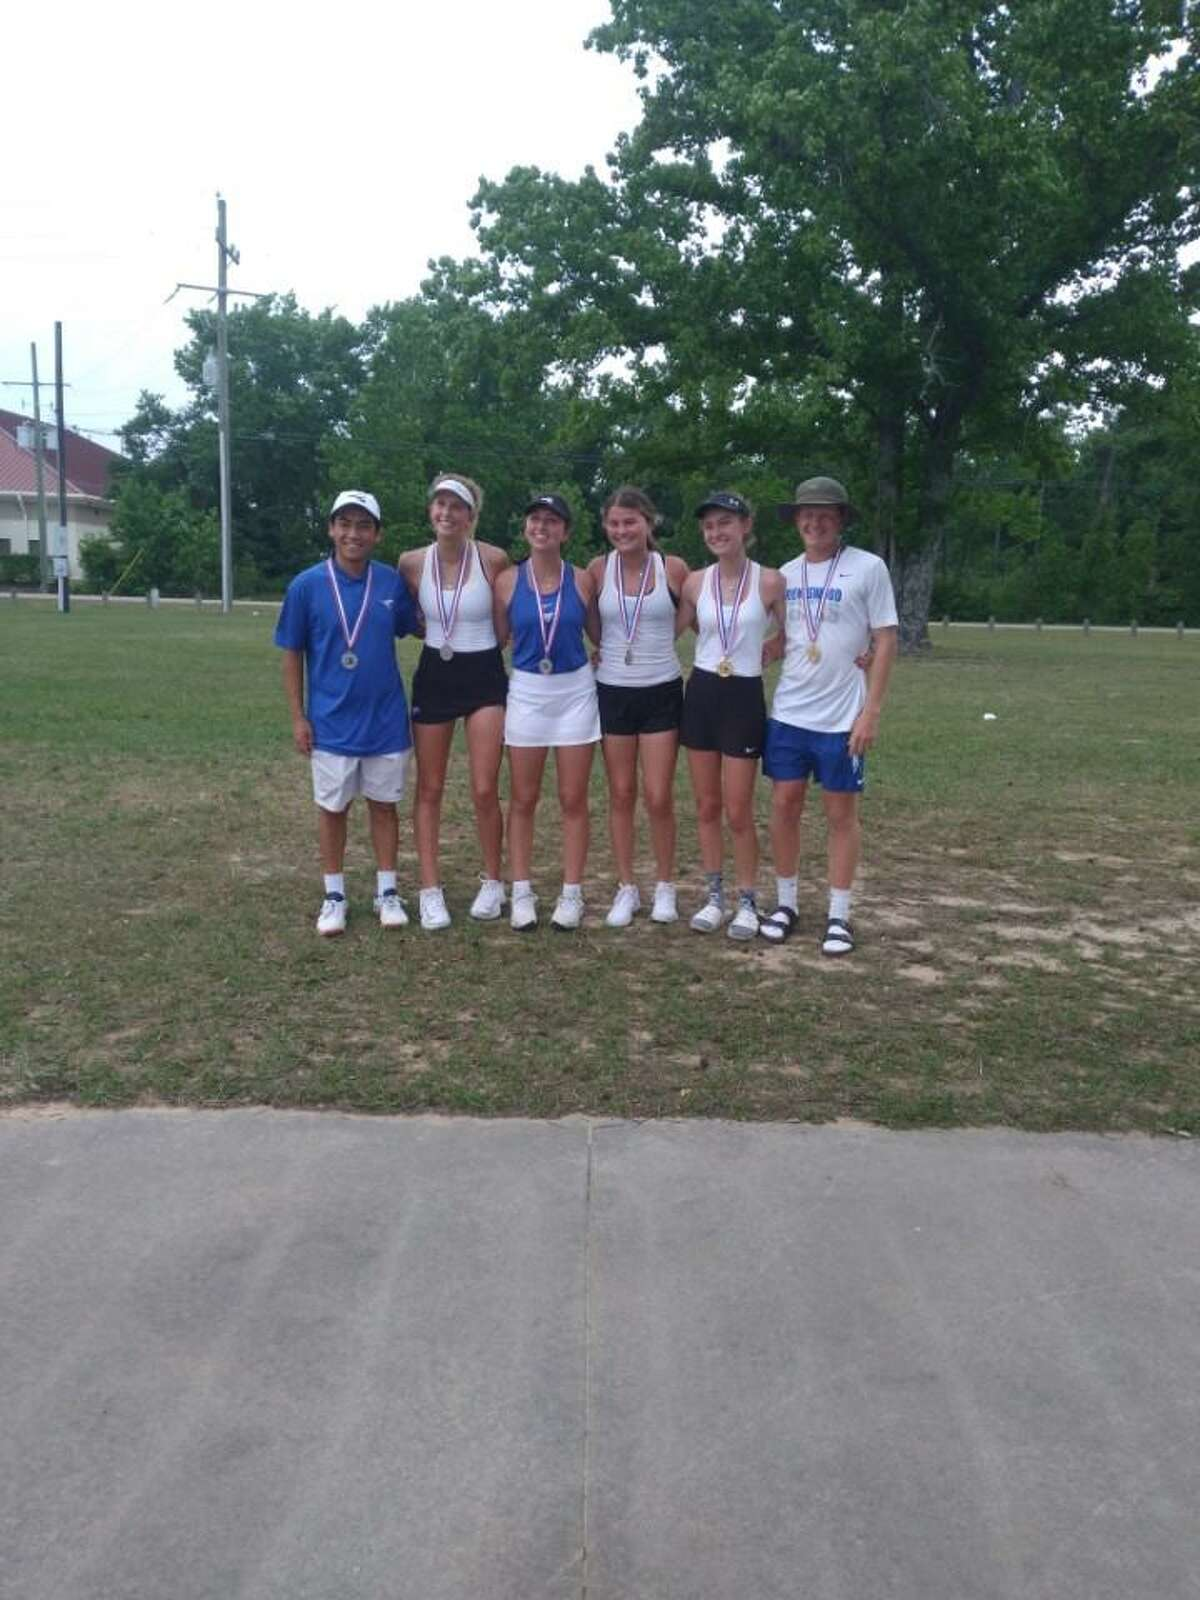 Friendswood tennis competing in the state tournament Thursday in San Antonio (left to right) Enrique Castillo, Leah Block, Adri McElwain, Elle Moss, Quinn Radtke and Carson Crow.